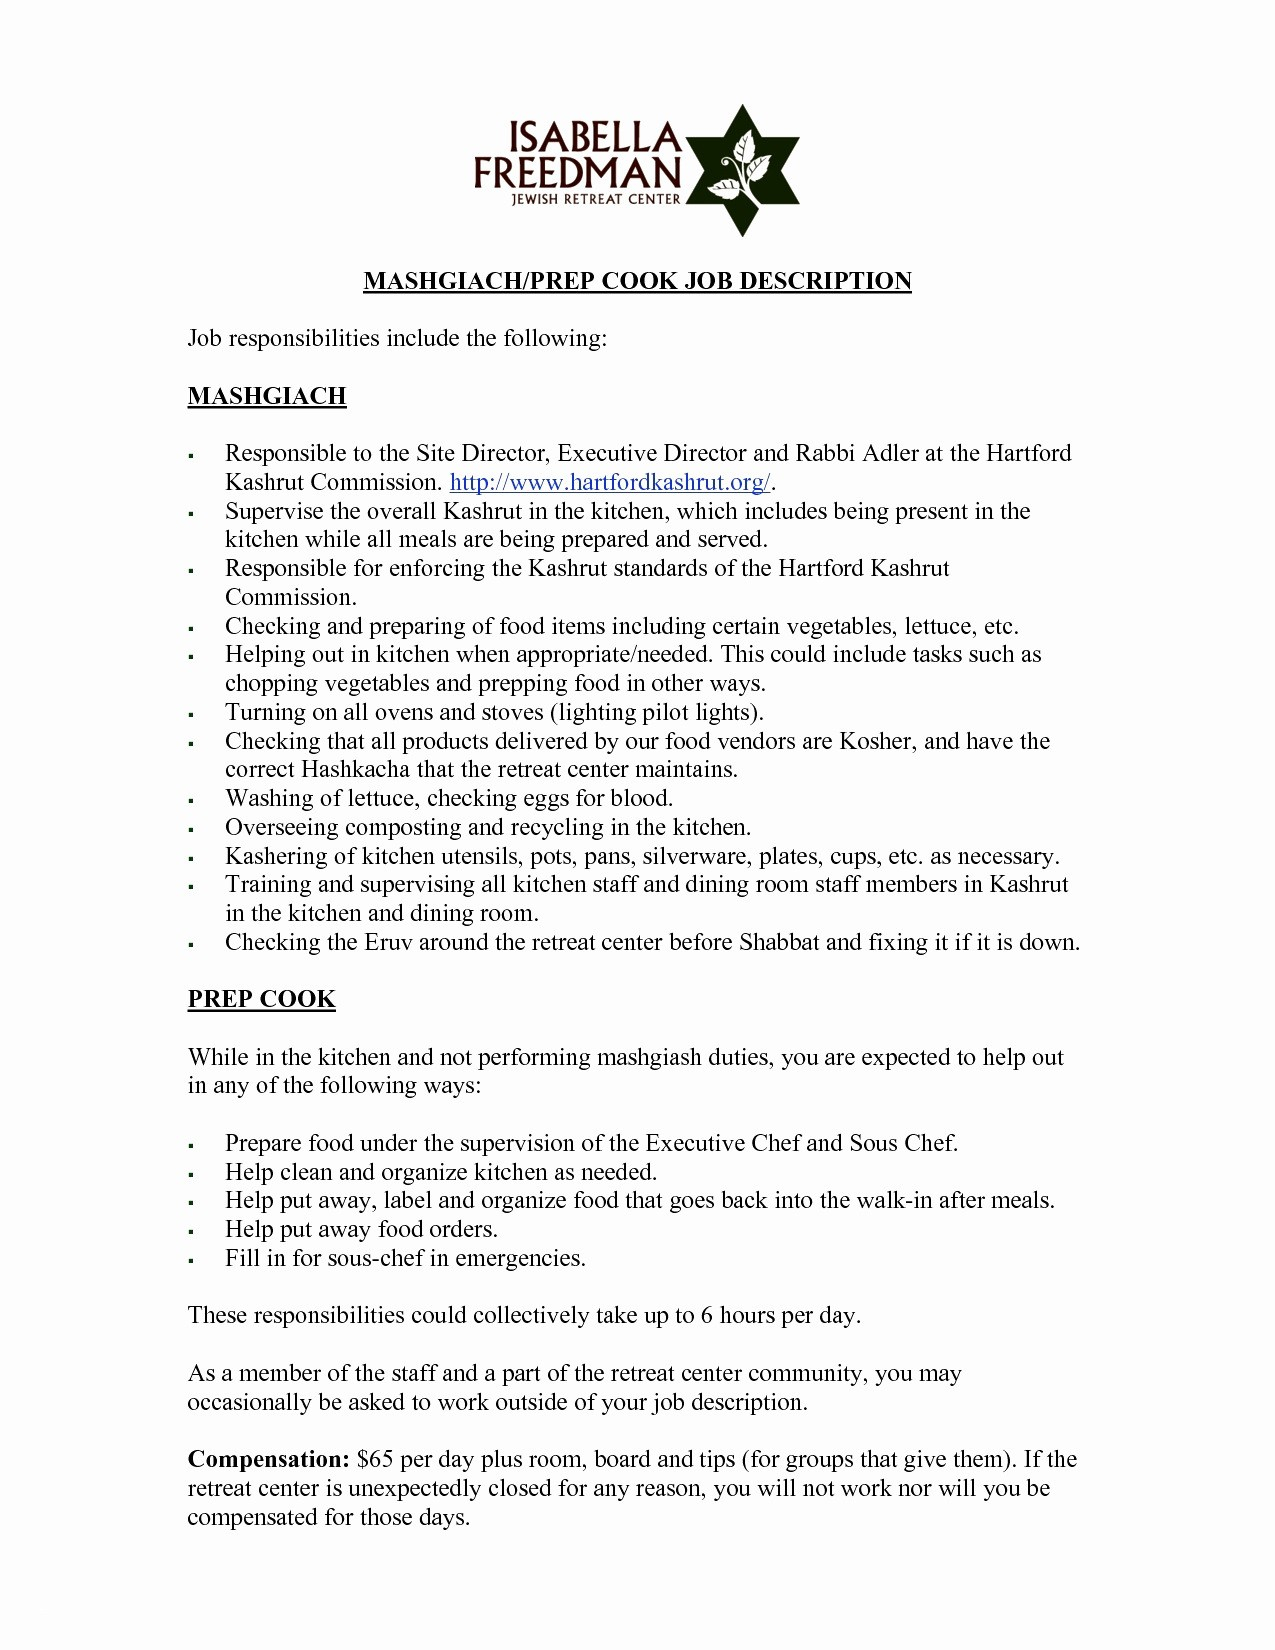 Resume Follow Up Letter Template Collection | Letter Templates